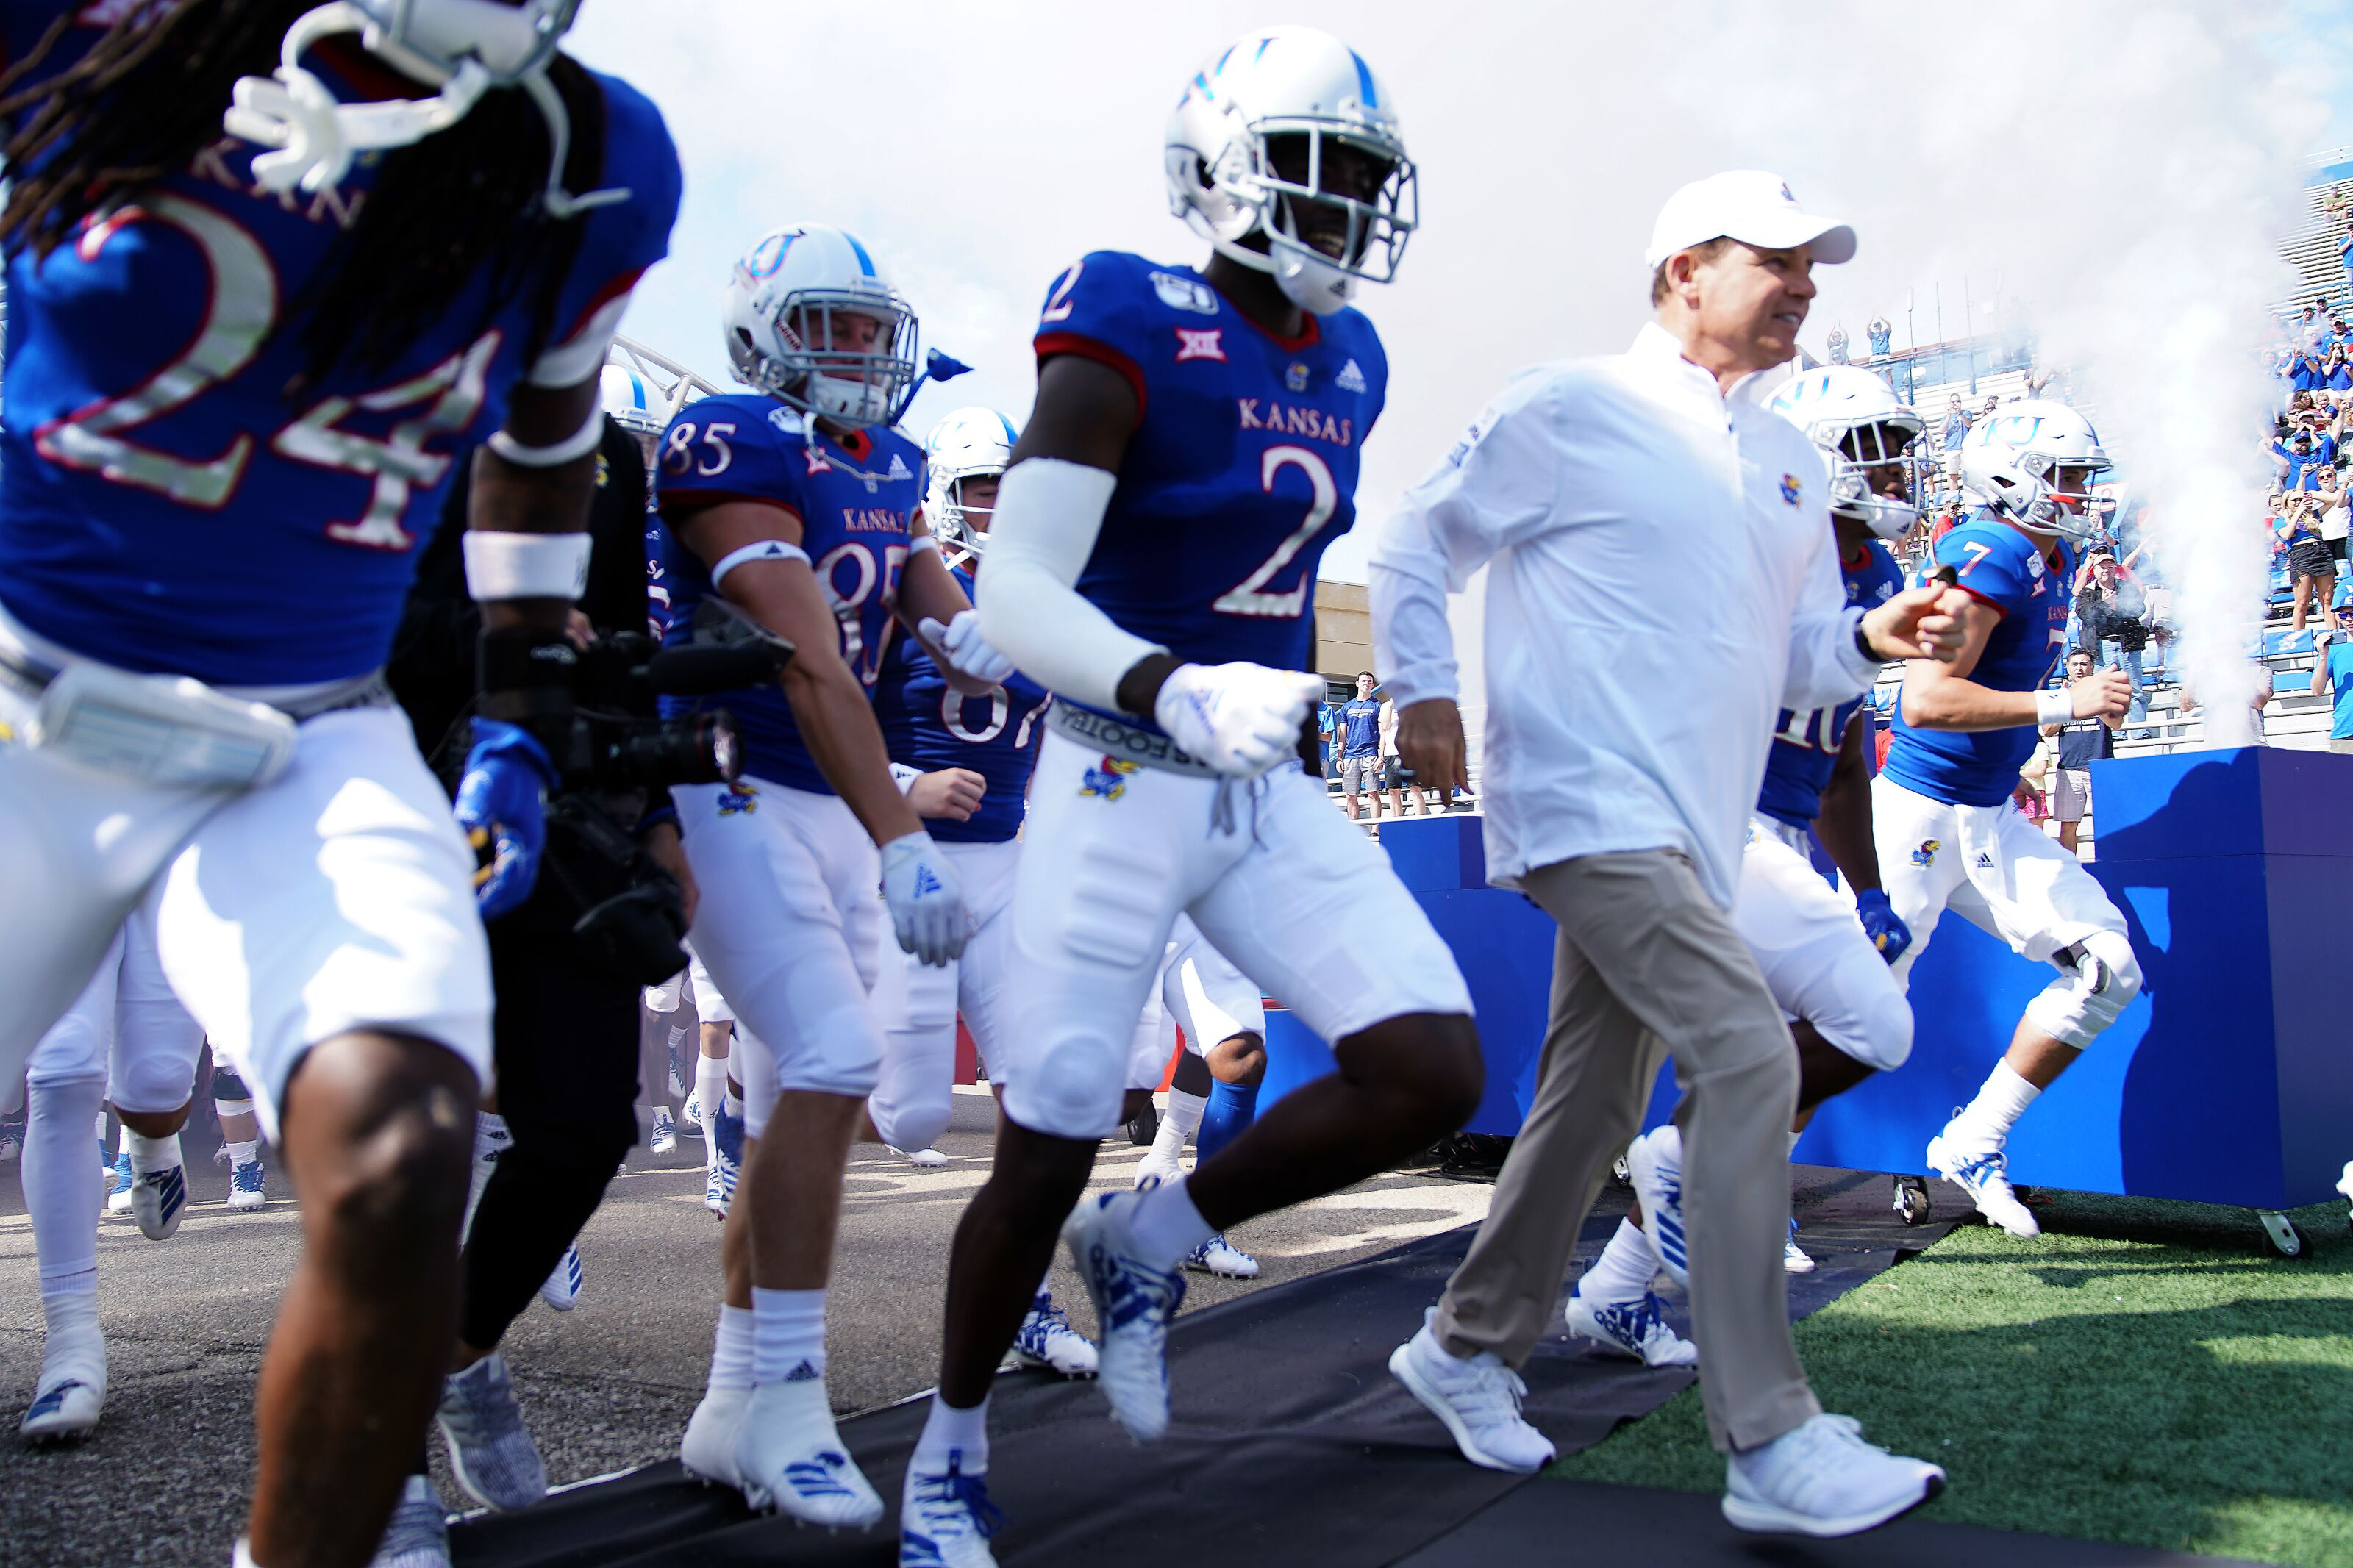 Kansas football can dominate West Virginia if they do these four things